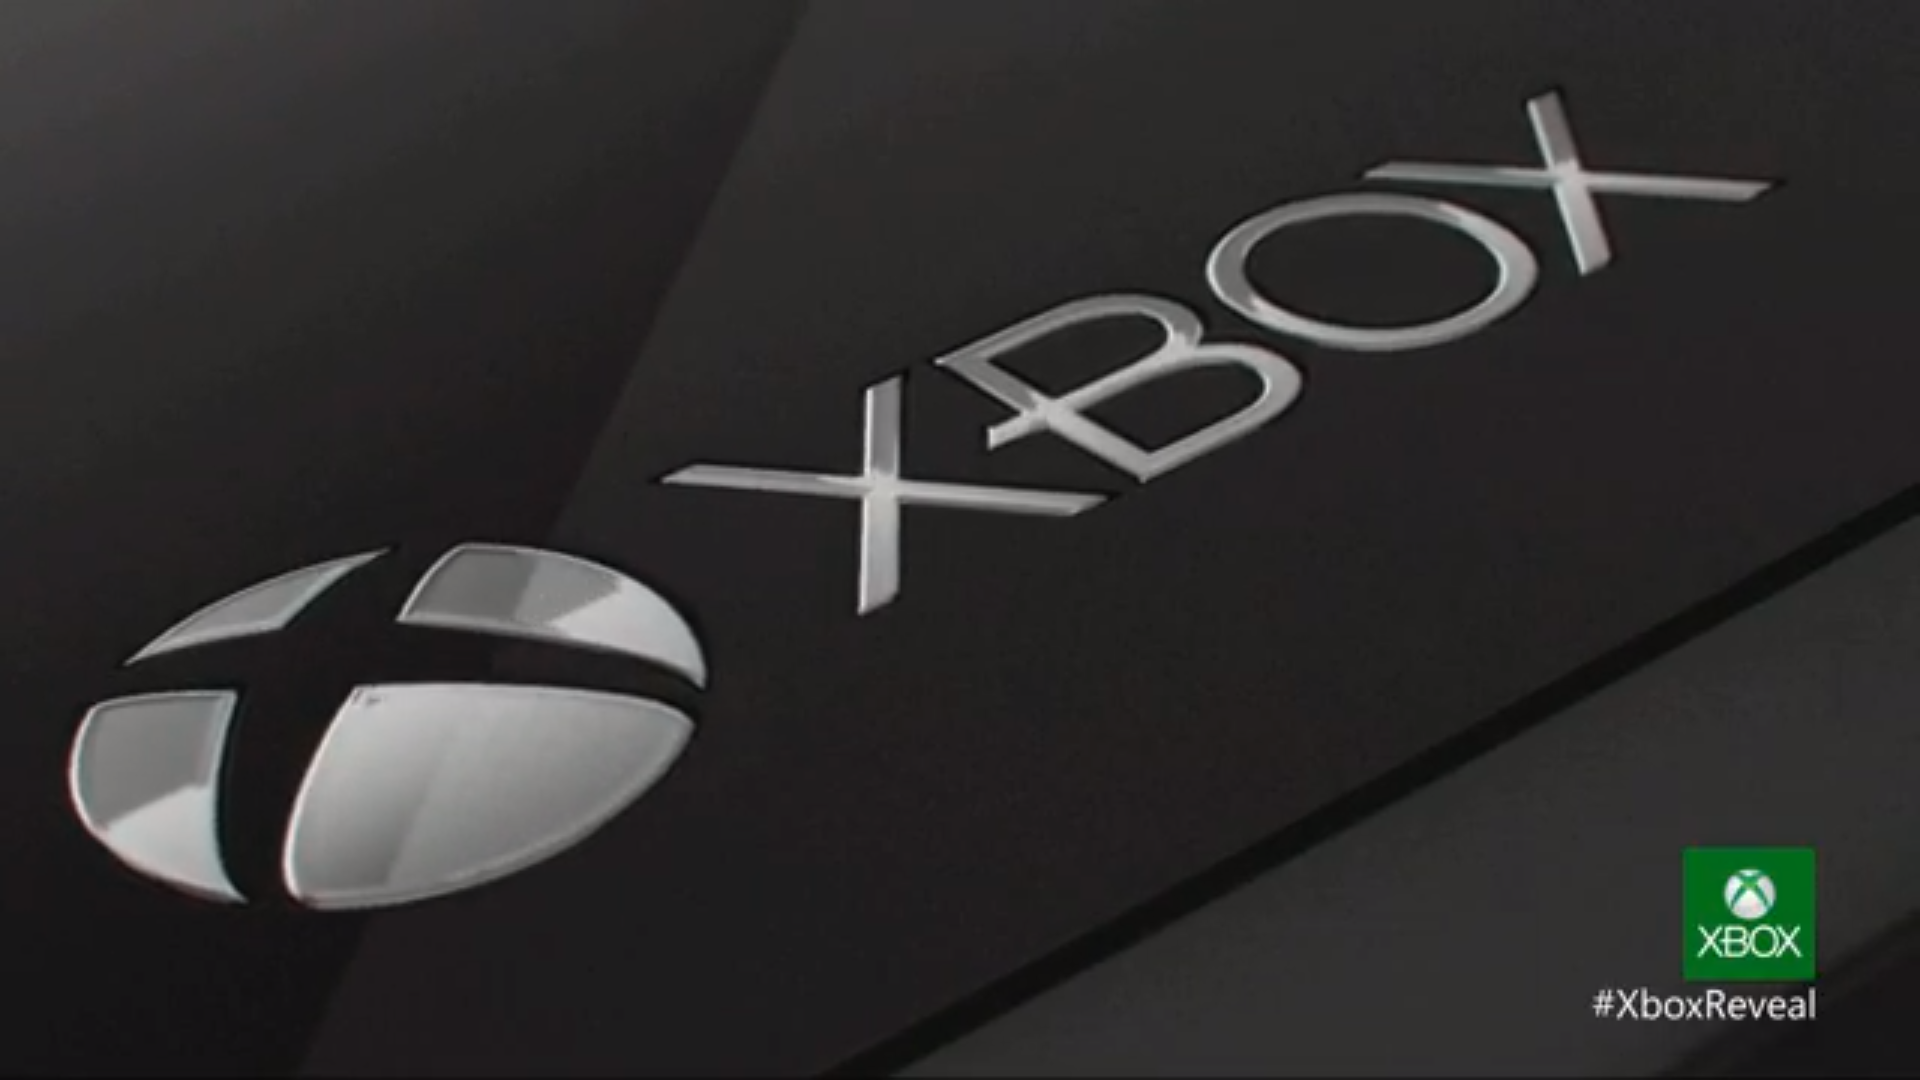 Xbox One | Xbox One Images, Pictures, Wallpapers on BsnSCB pluspng.com - Xbox HD PNG